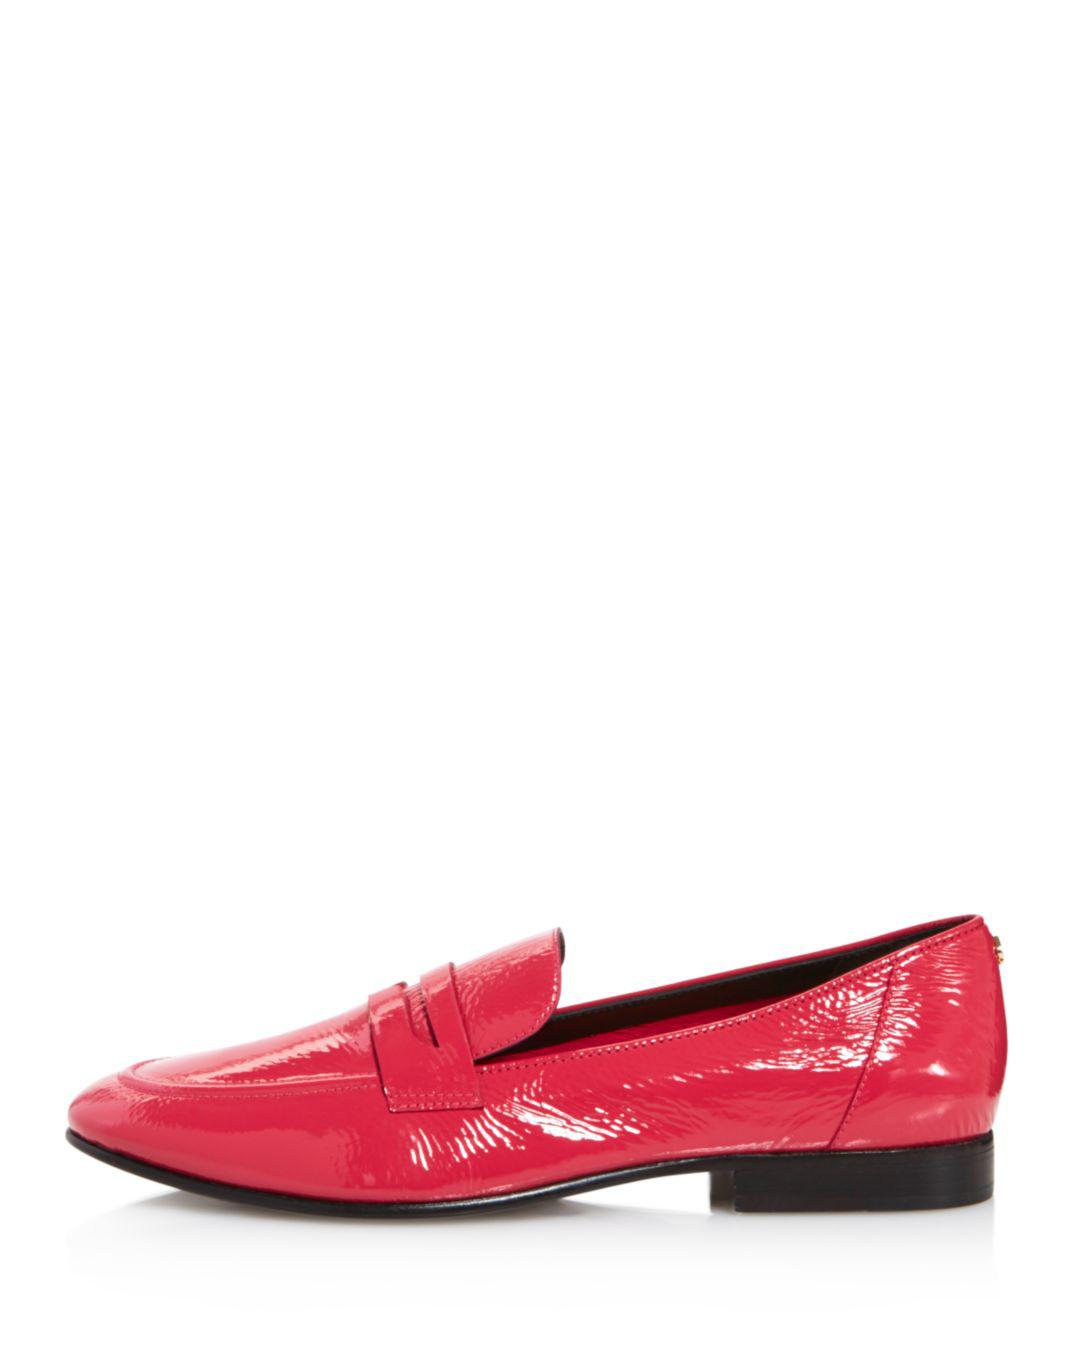 05a2857fc6d Lyst - Kate Spade Women s Genevieve Almond Toe Patent Leather Loafers